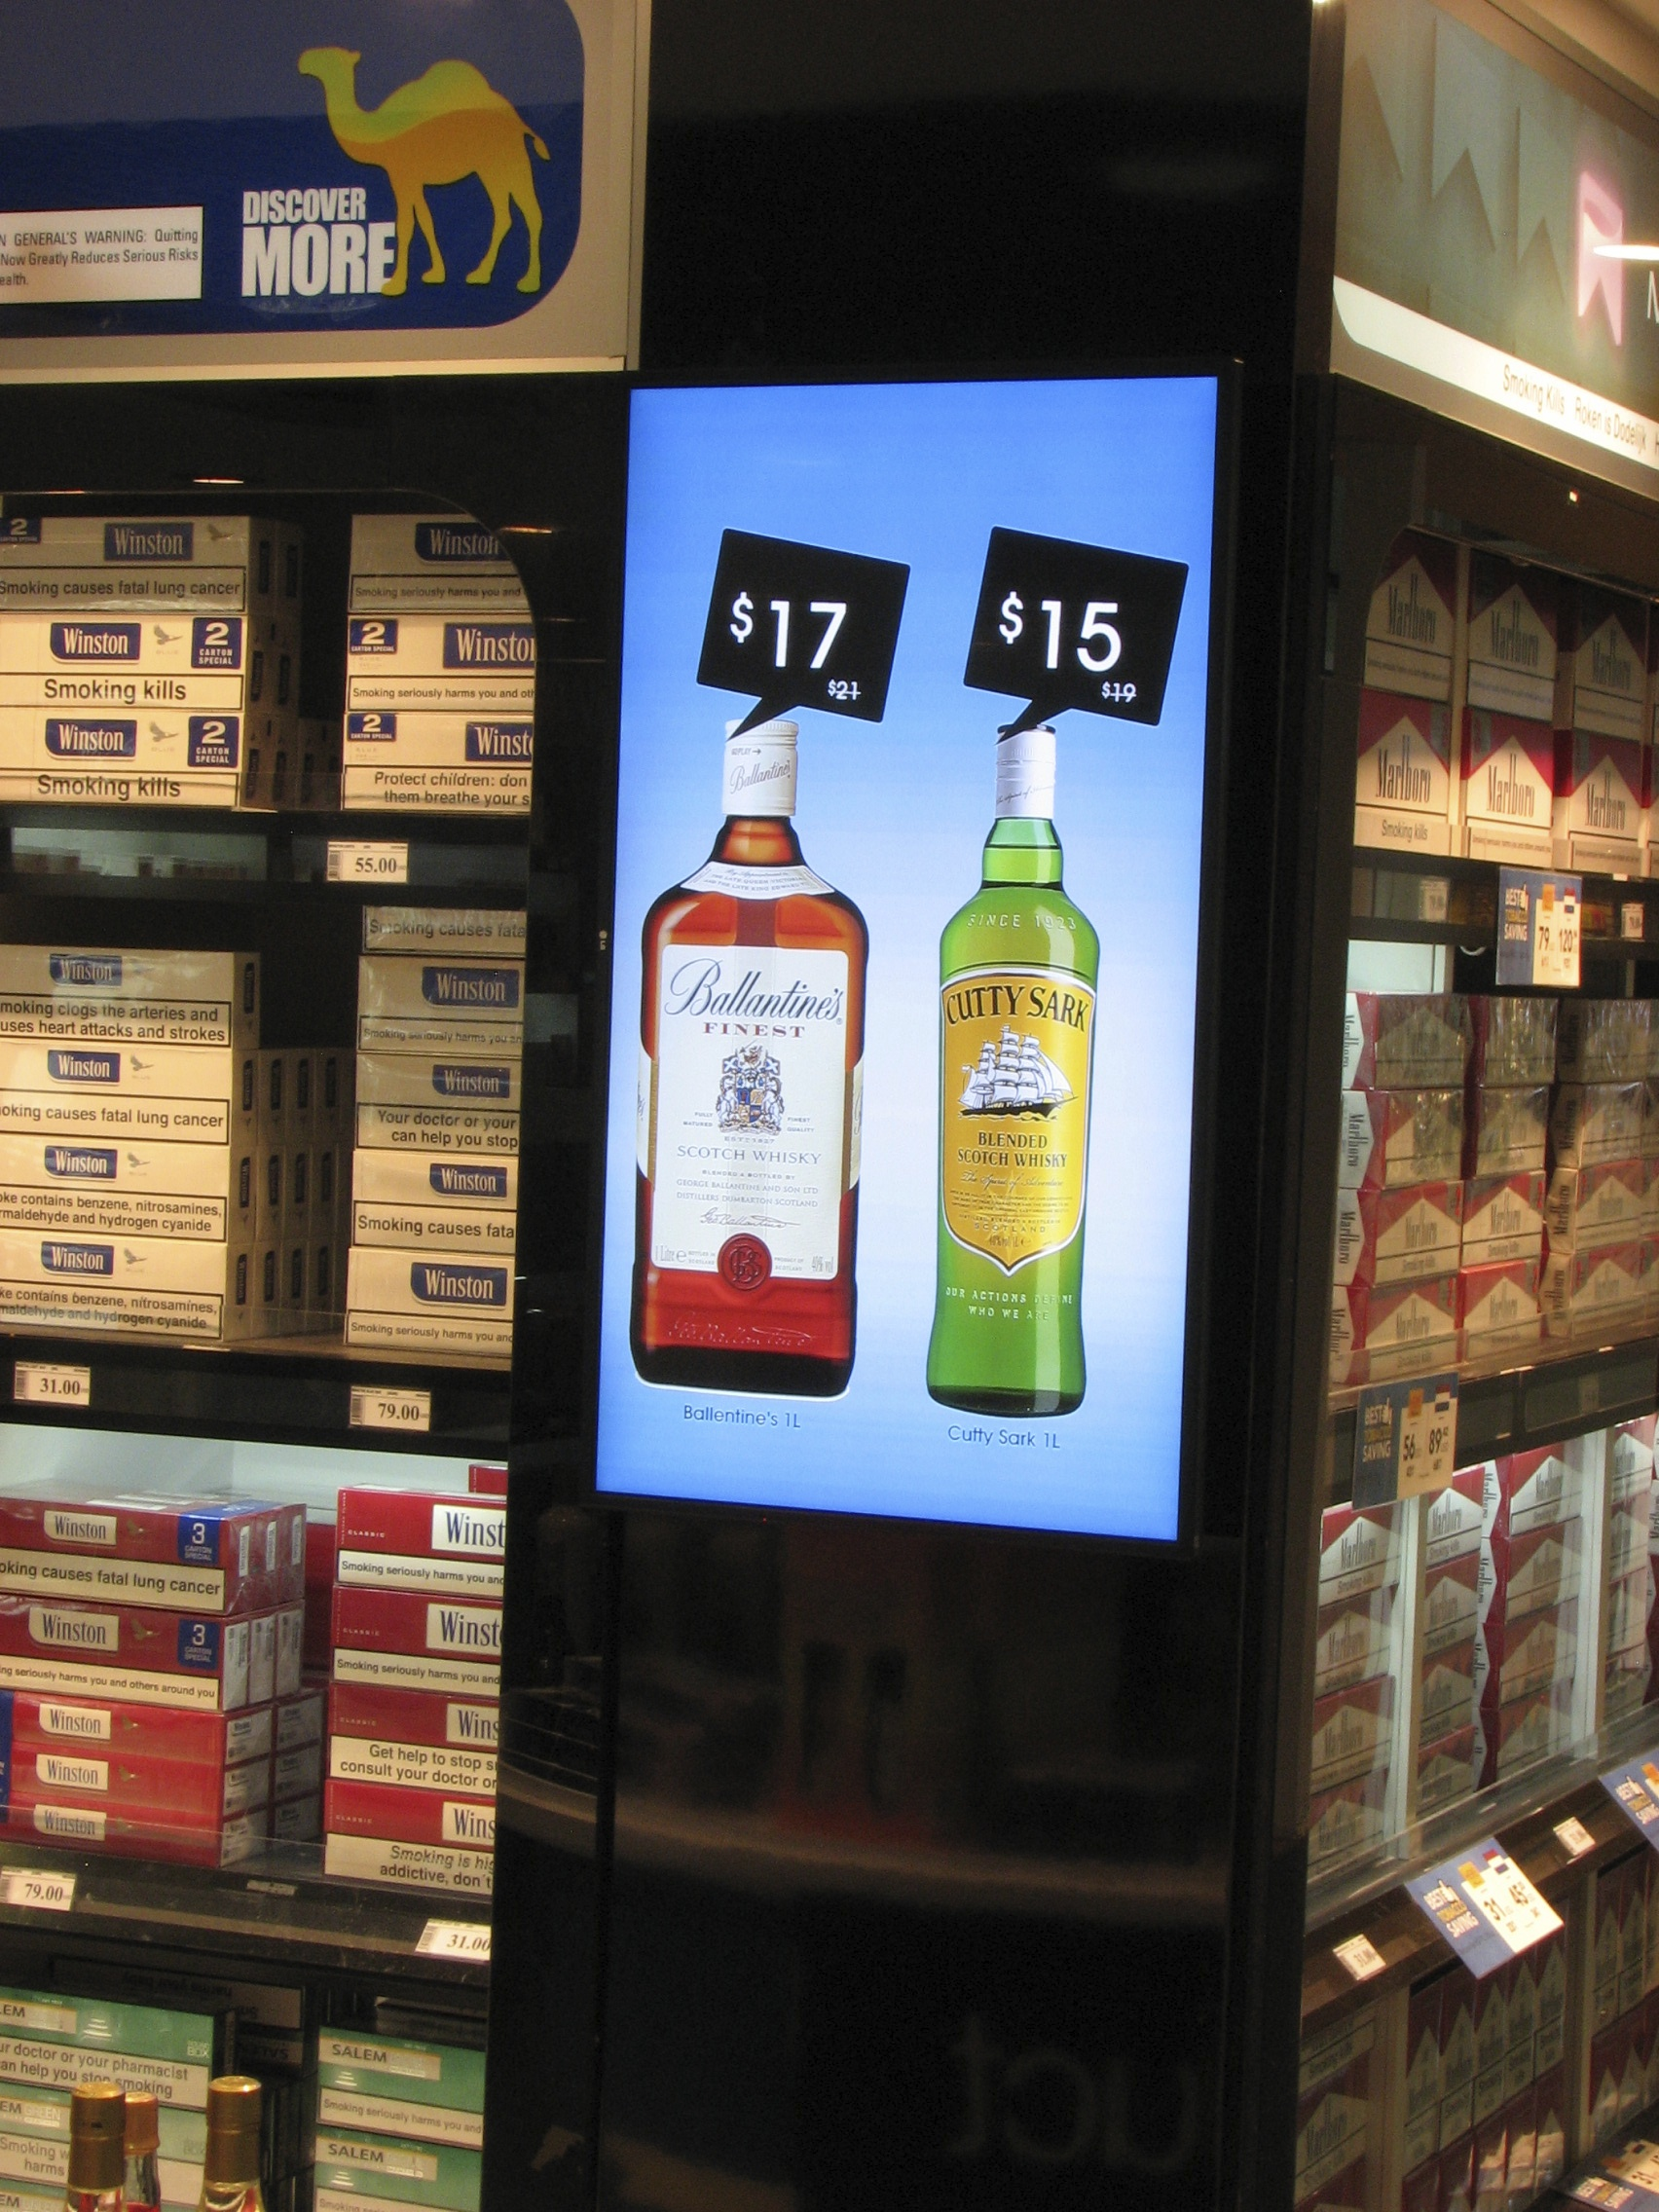 OSM Solutions provides video wall and digital signs for